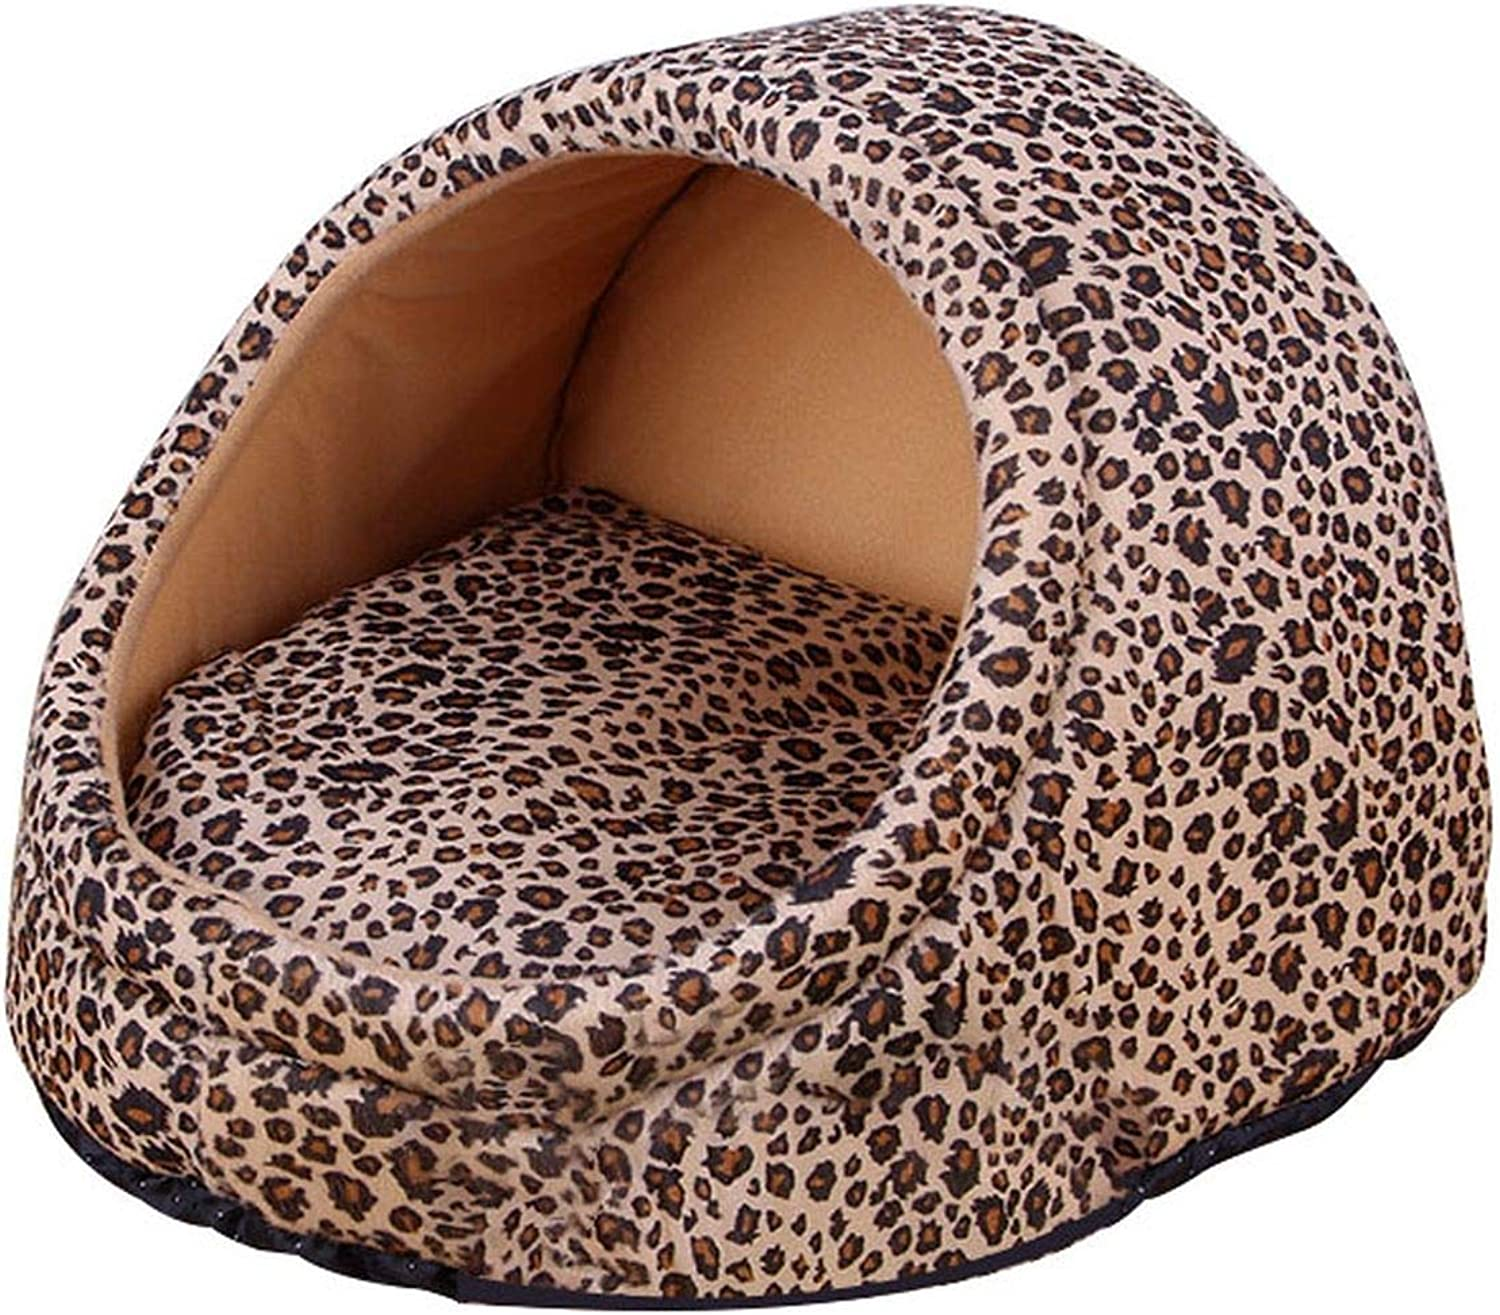 11 Pattern Soft Warm Dog Bed House Winter Cat Bed Small Dog House Detachable Puppy Cushion,Leopard,L